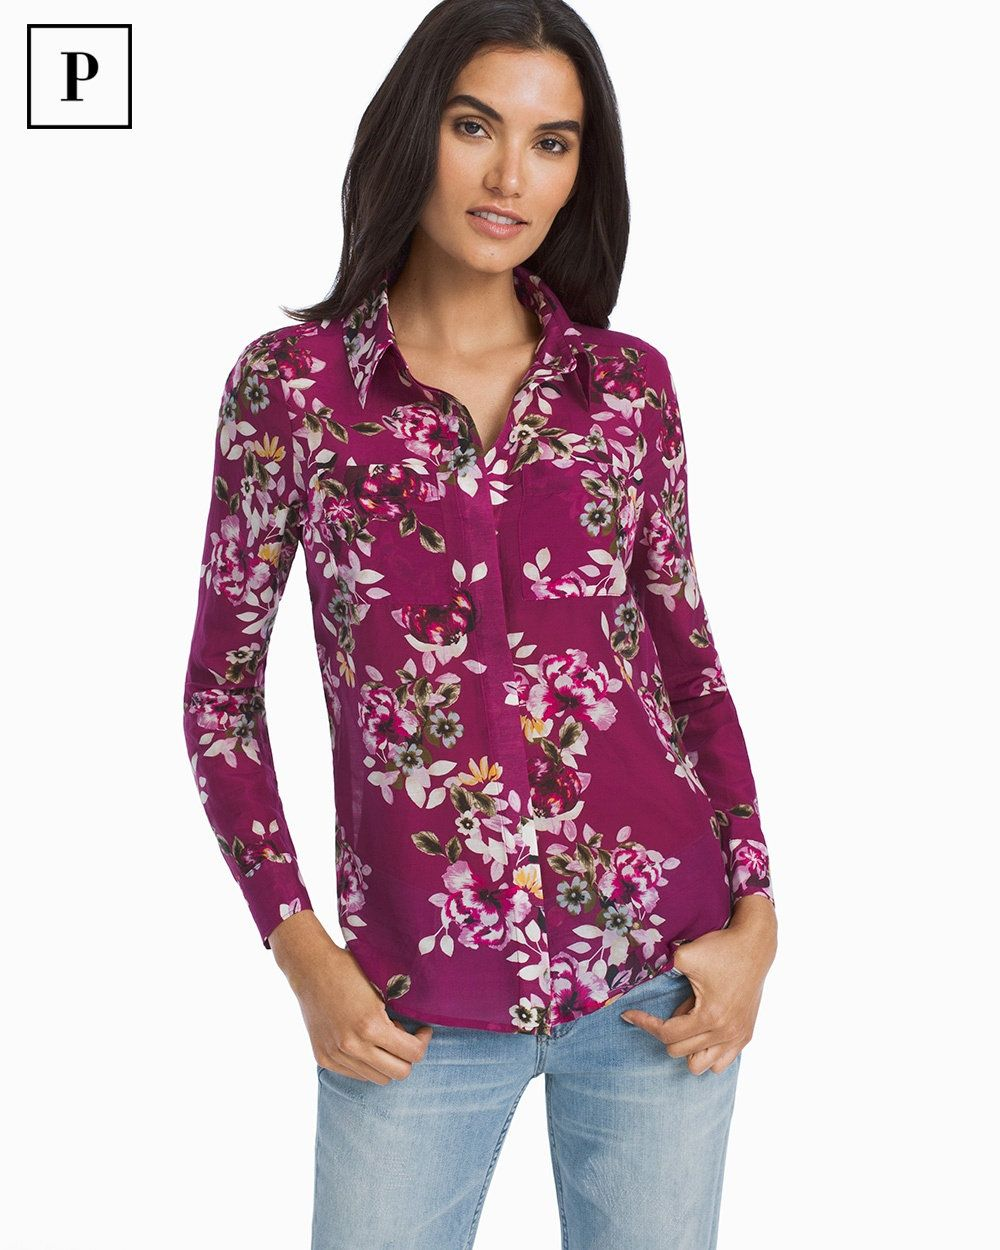 756a12710 A classic, customer-favorite button-up shirt is back and reimagined in a  cotton-silk blend and topped off with a bold floral print we call Berry  Bouquet.